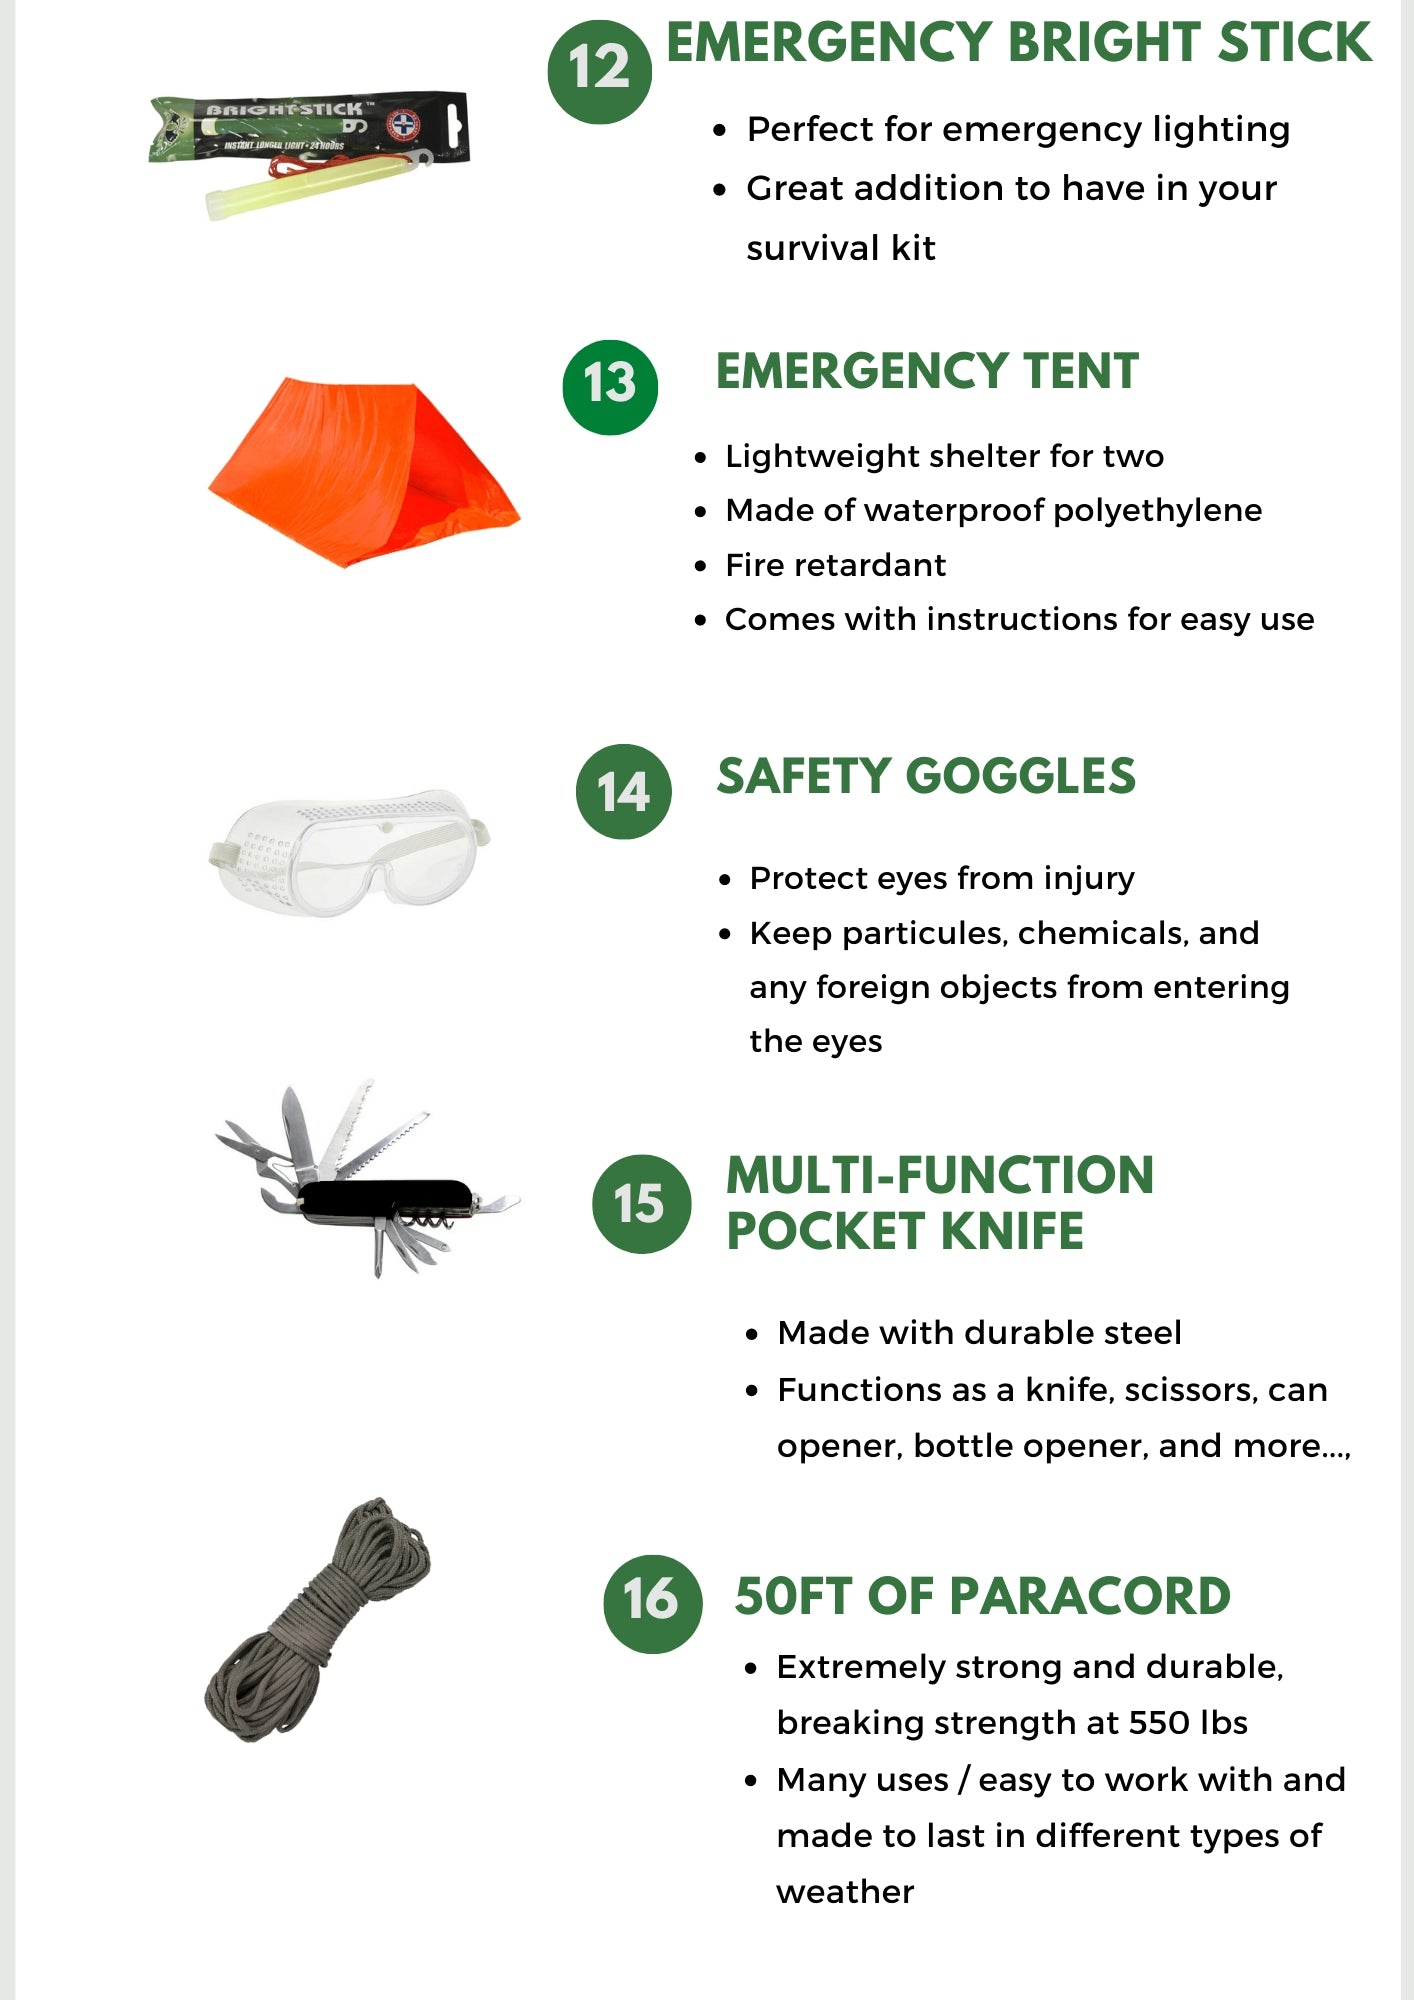 4 Person Go Bag Survival Kit - Be Ready Bags